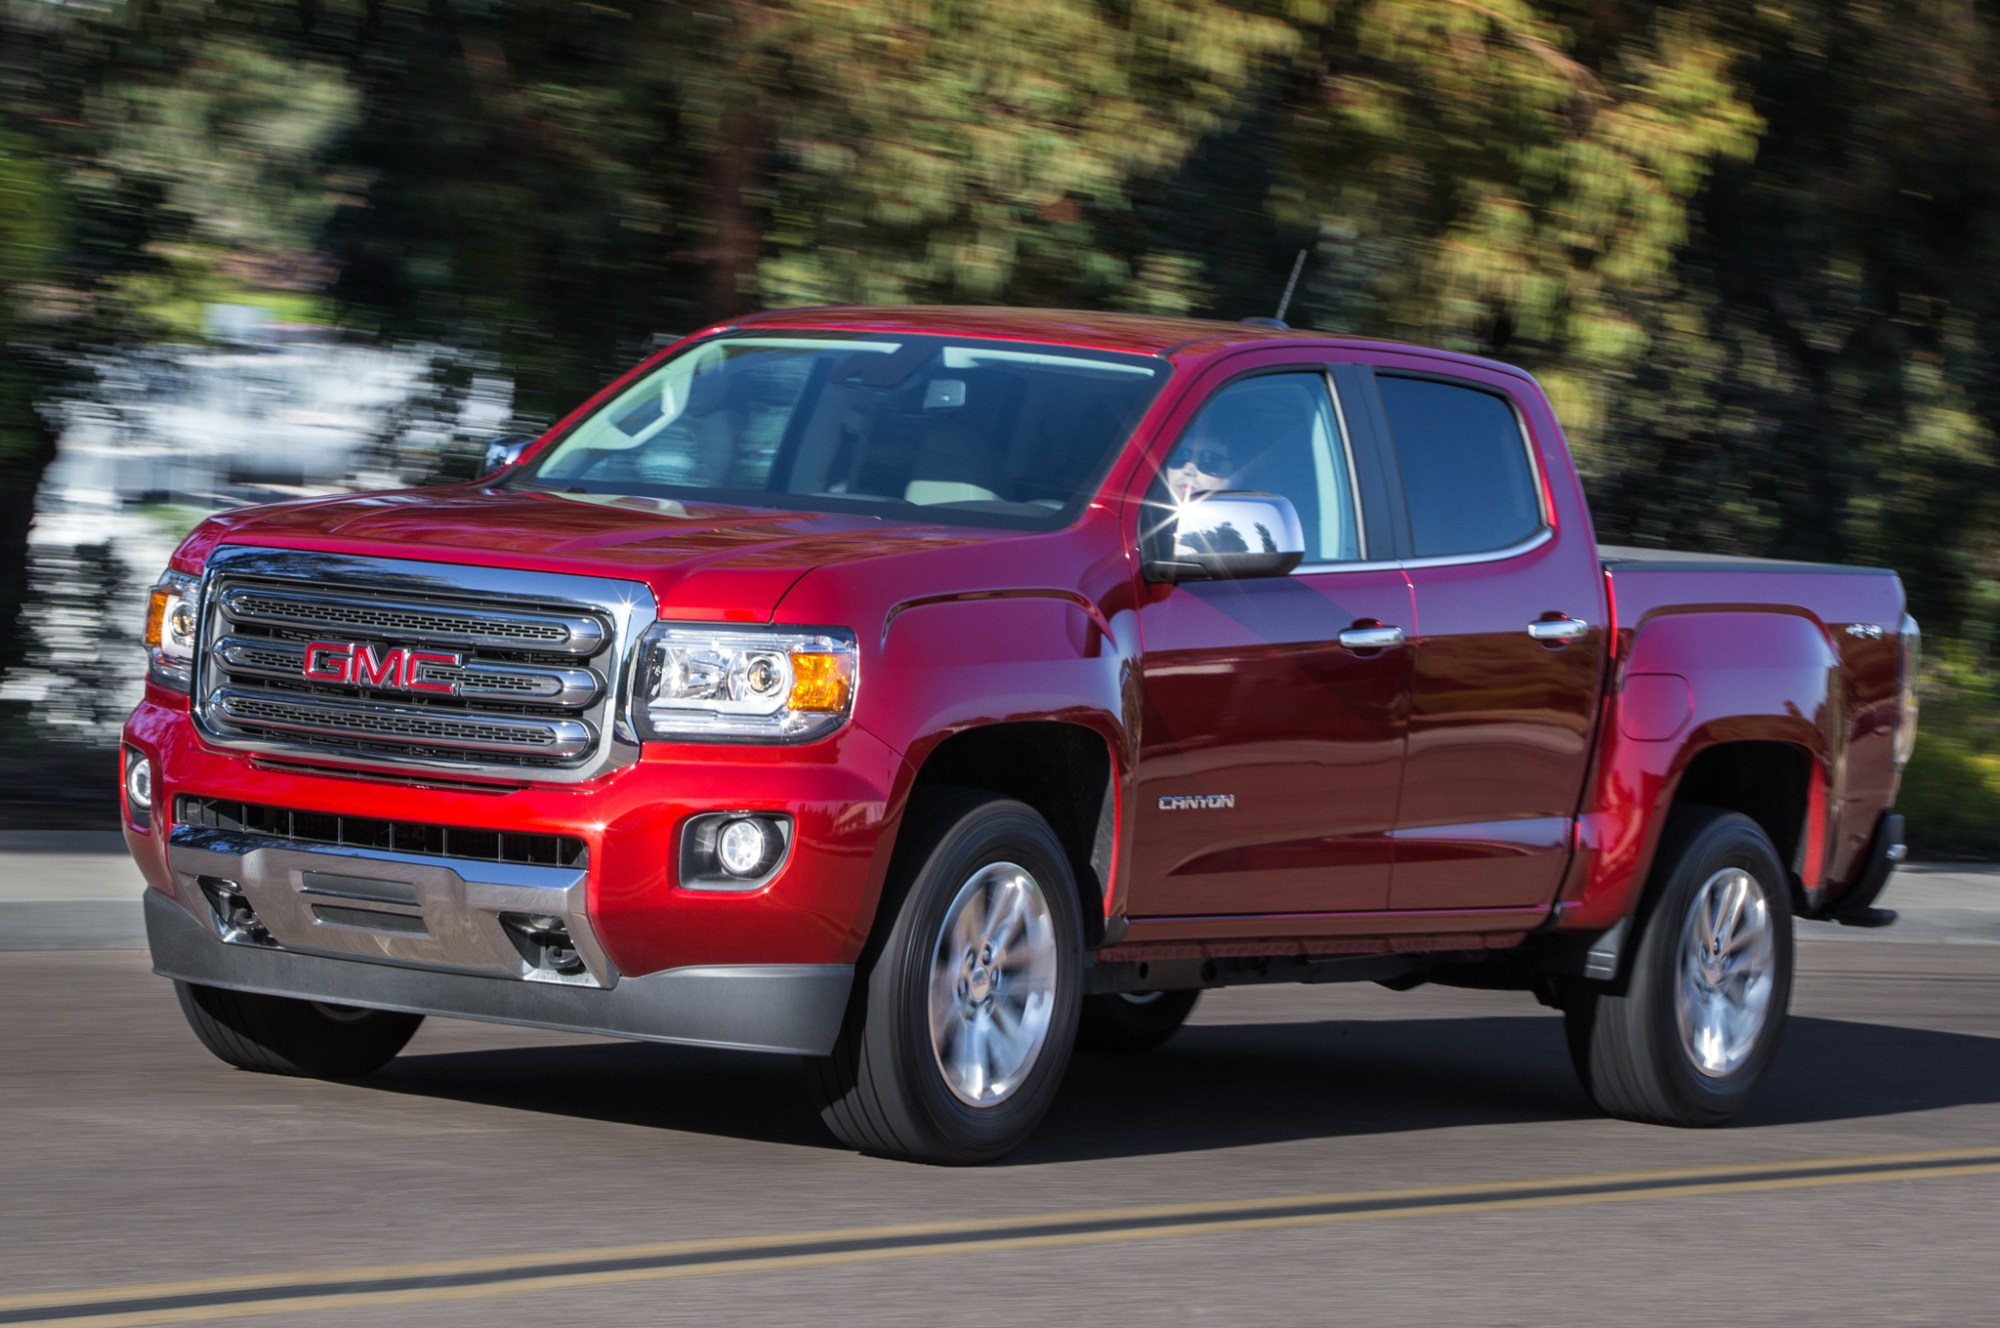 hight resolution of trailer wiring diagram gmc canyon wiring library 2007 gmc yukon wiring diagram 2015 gmc canyon wiring diagram